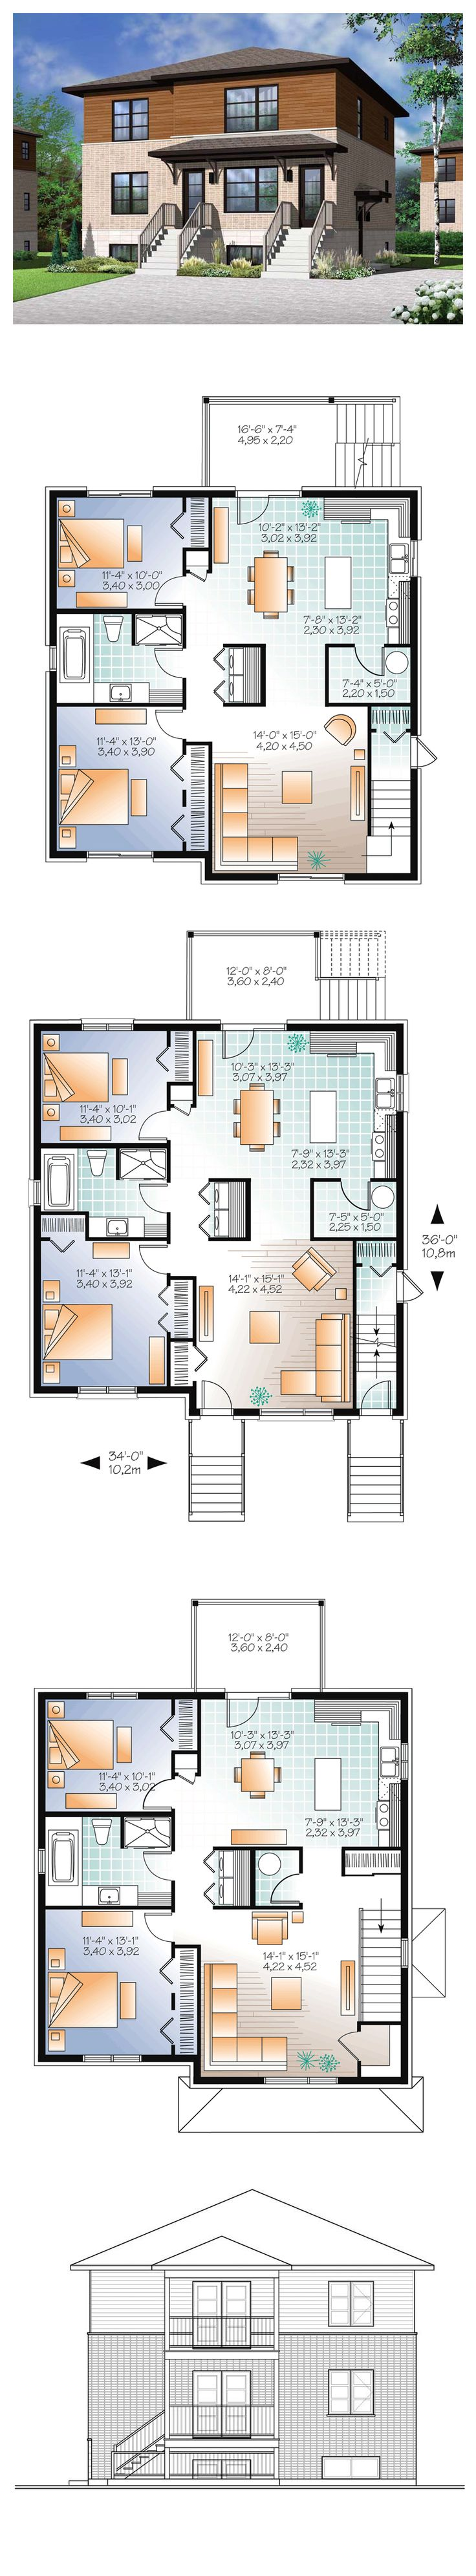 1000 images about duplex apartment plans on for Duplex apartment plans